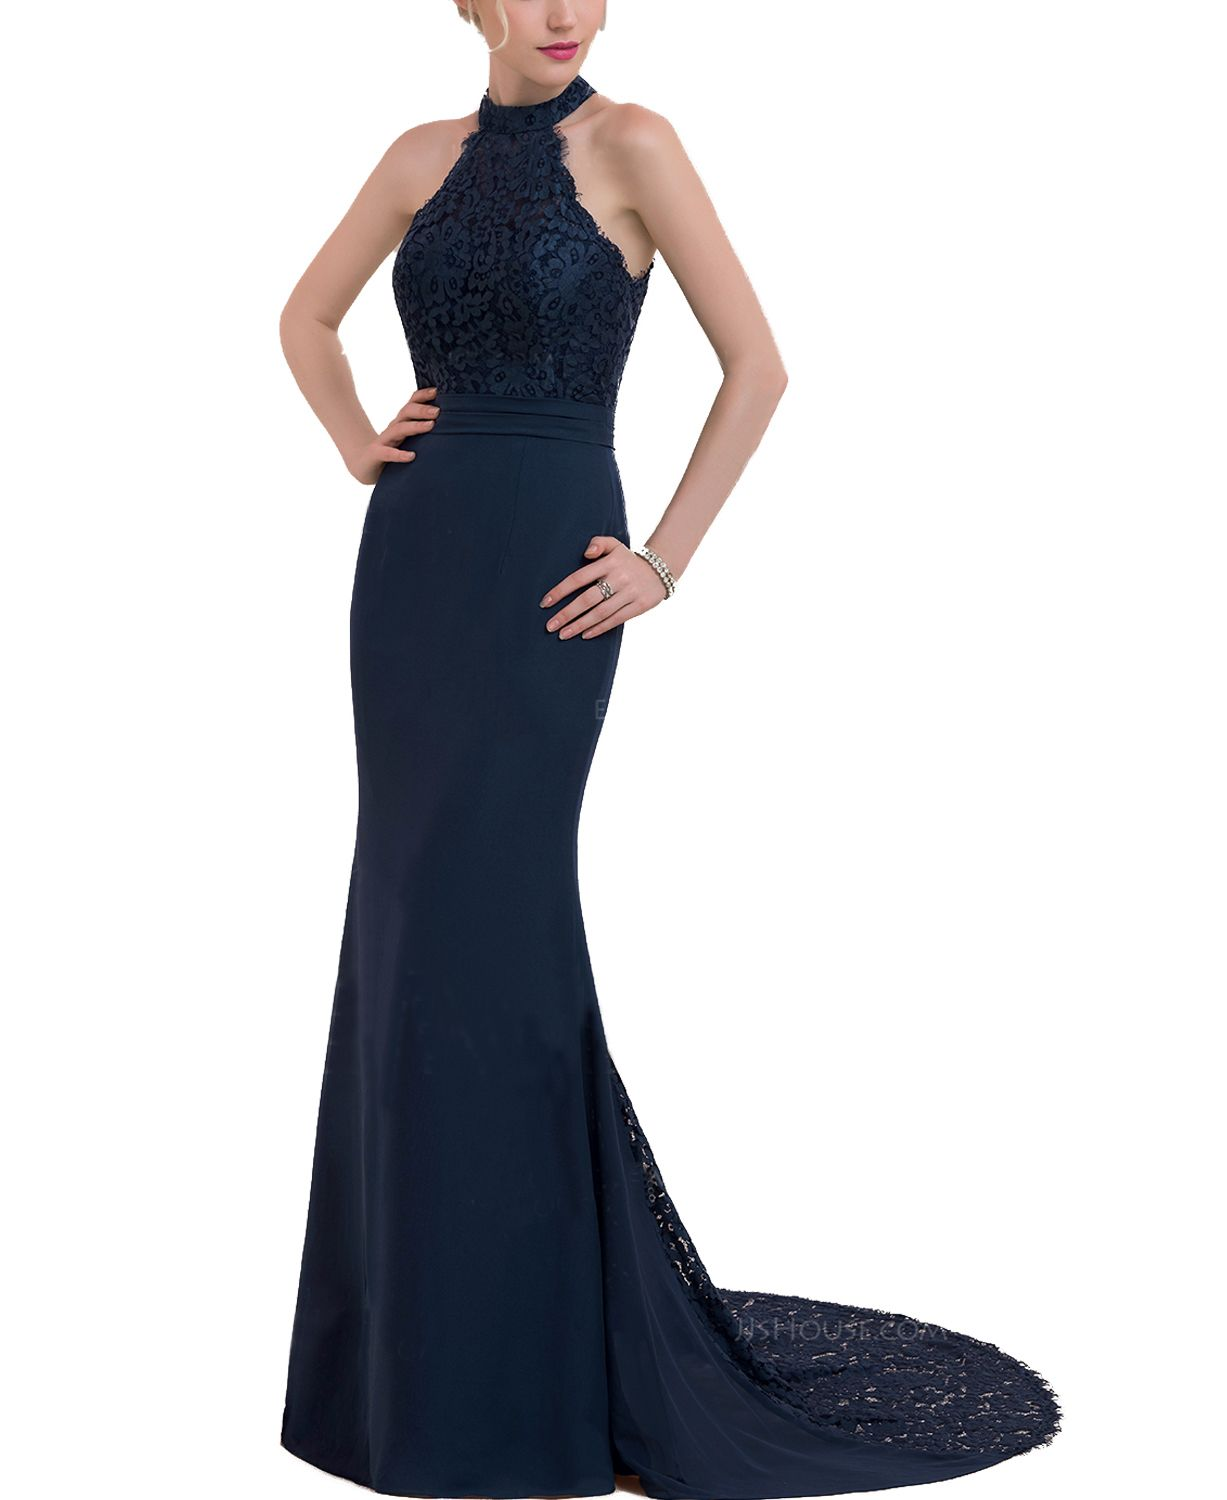 Halter navy blue lace mermaid prom dresslong navy prom dresses